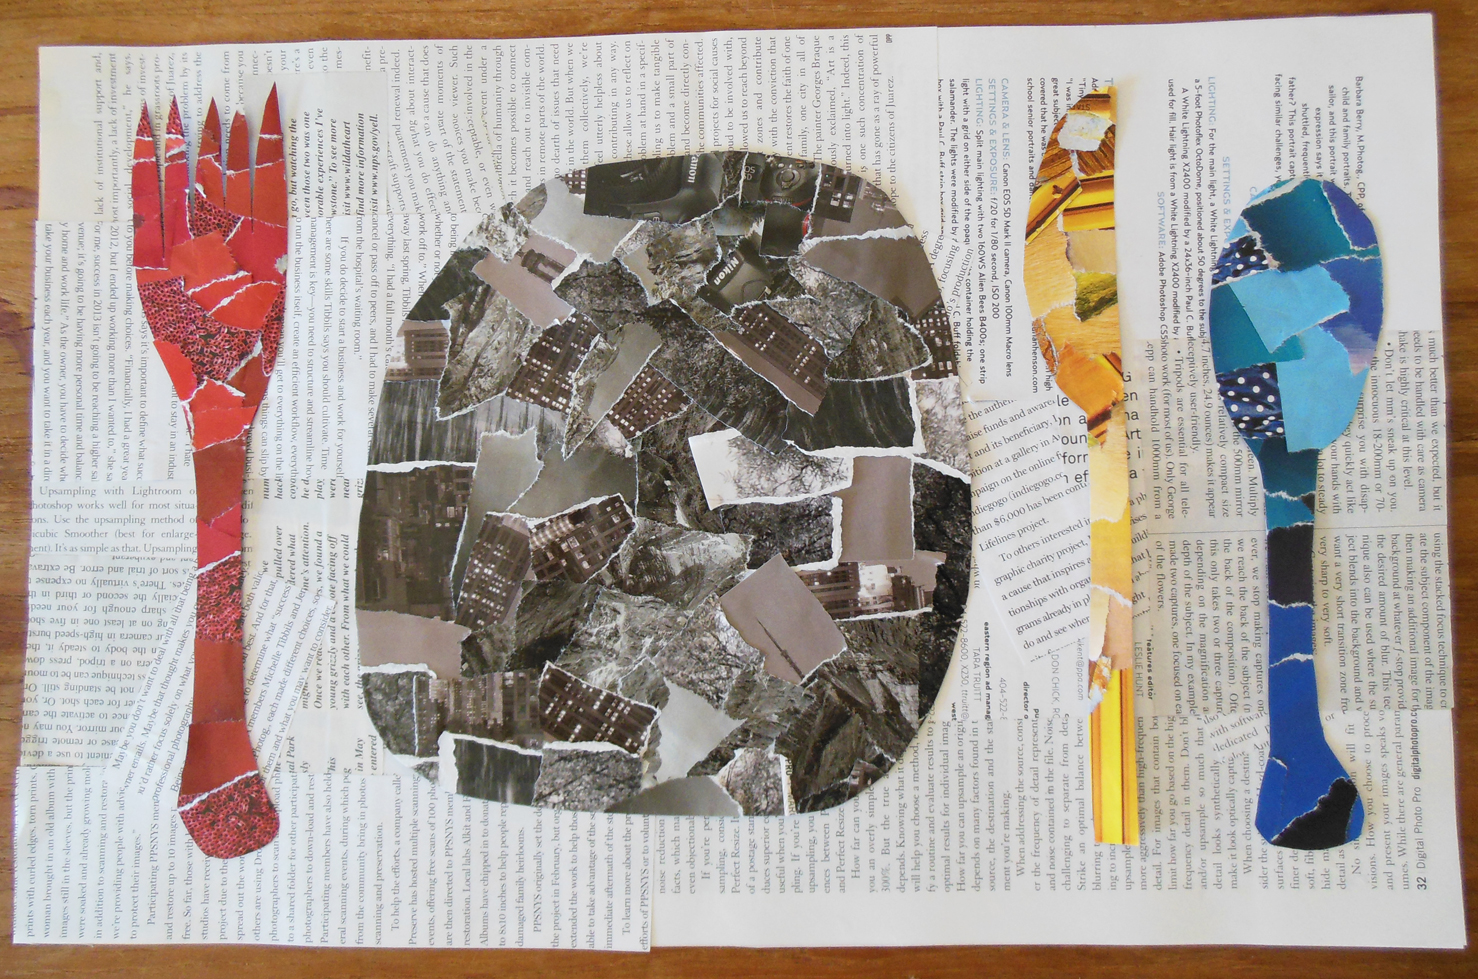 completed placemat made from torn pieces of magazine pages